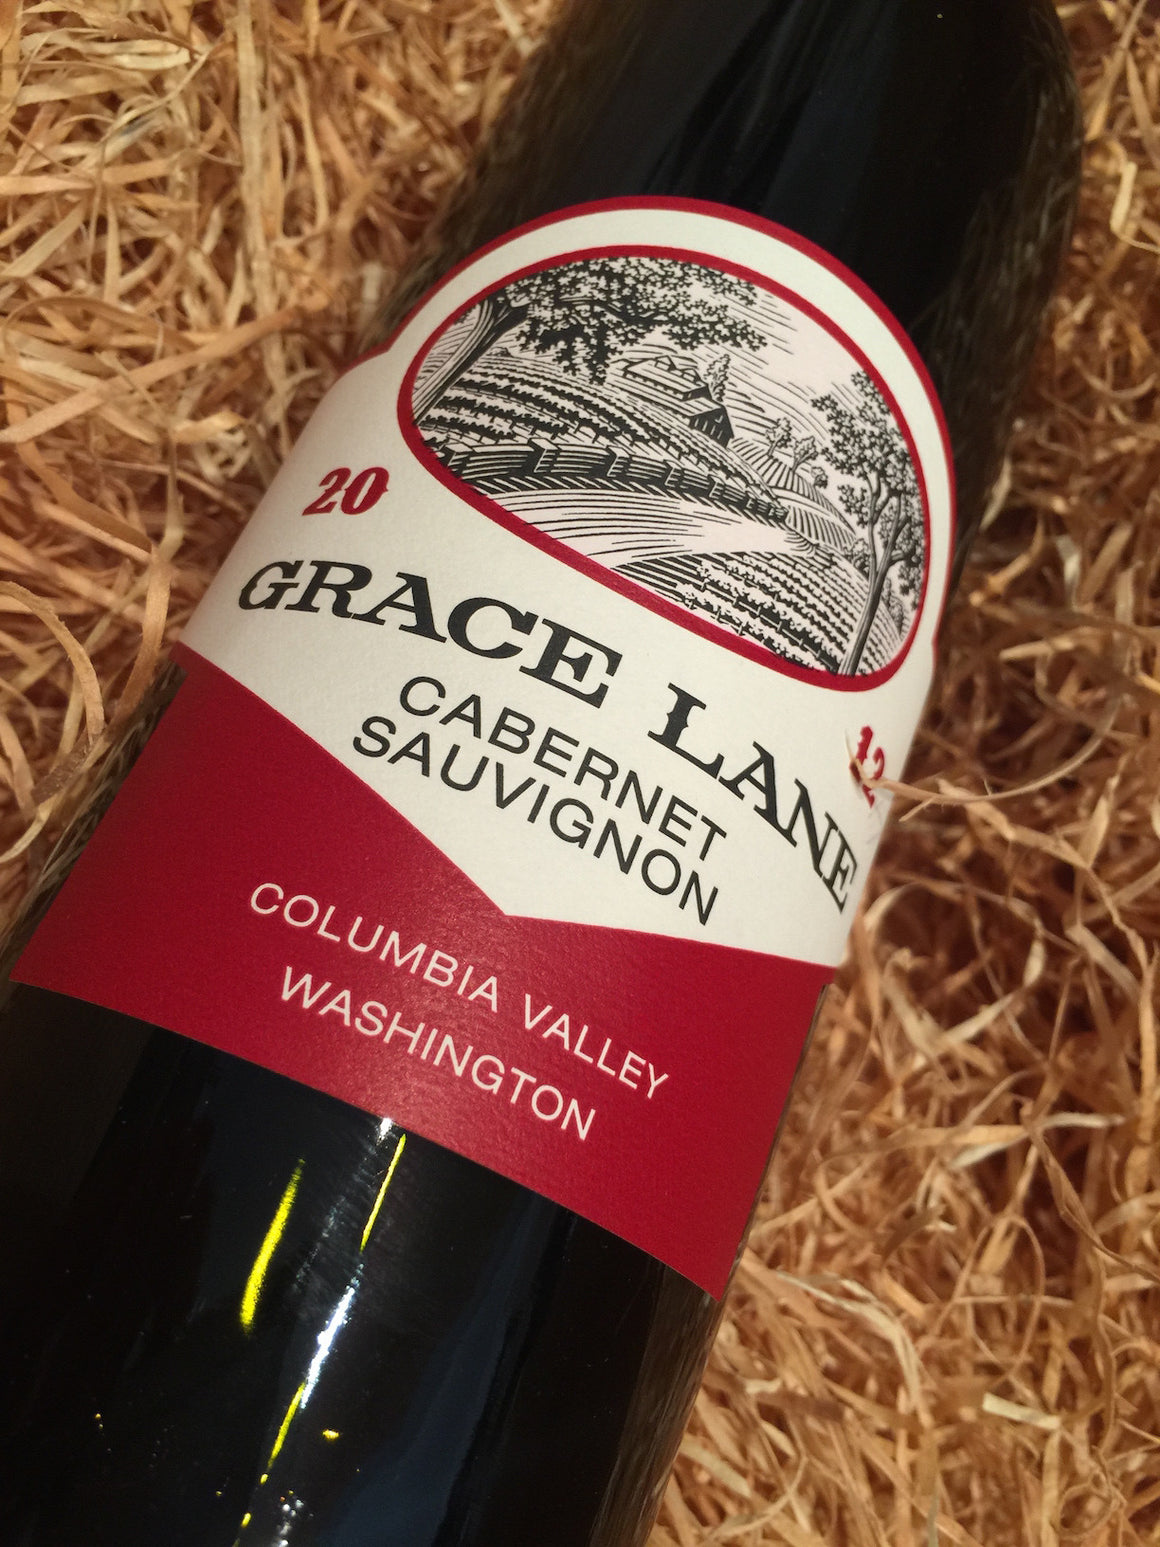 Grace Lane Cabernet Sauvignon 2013 75cl